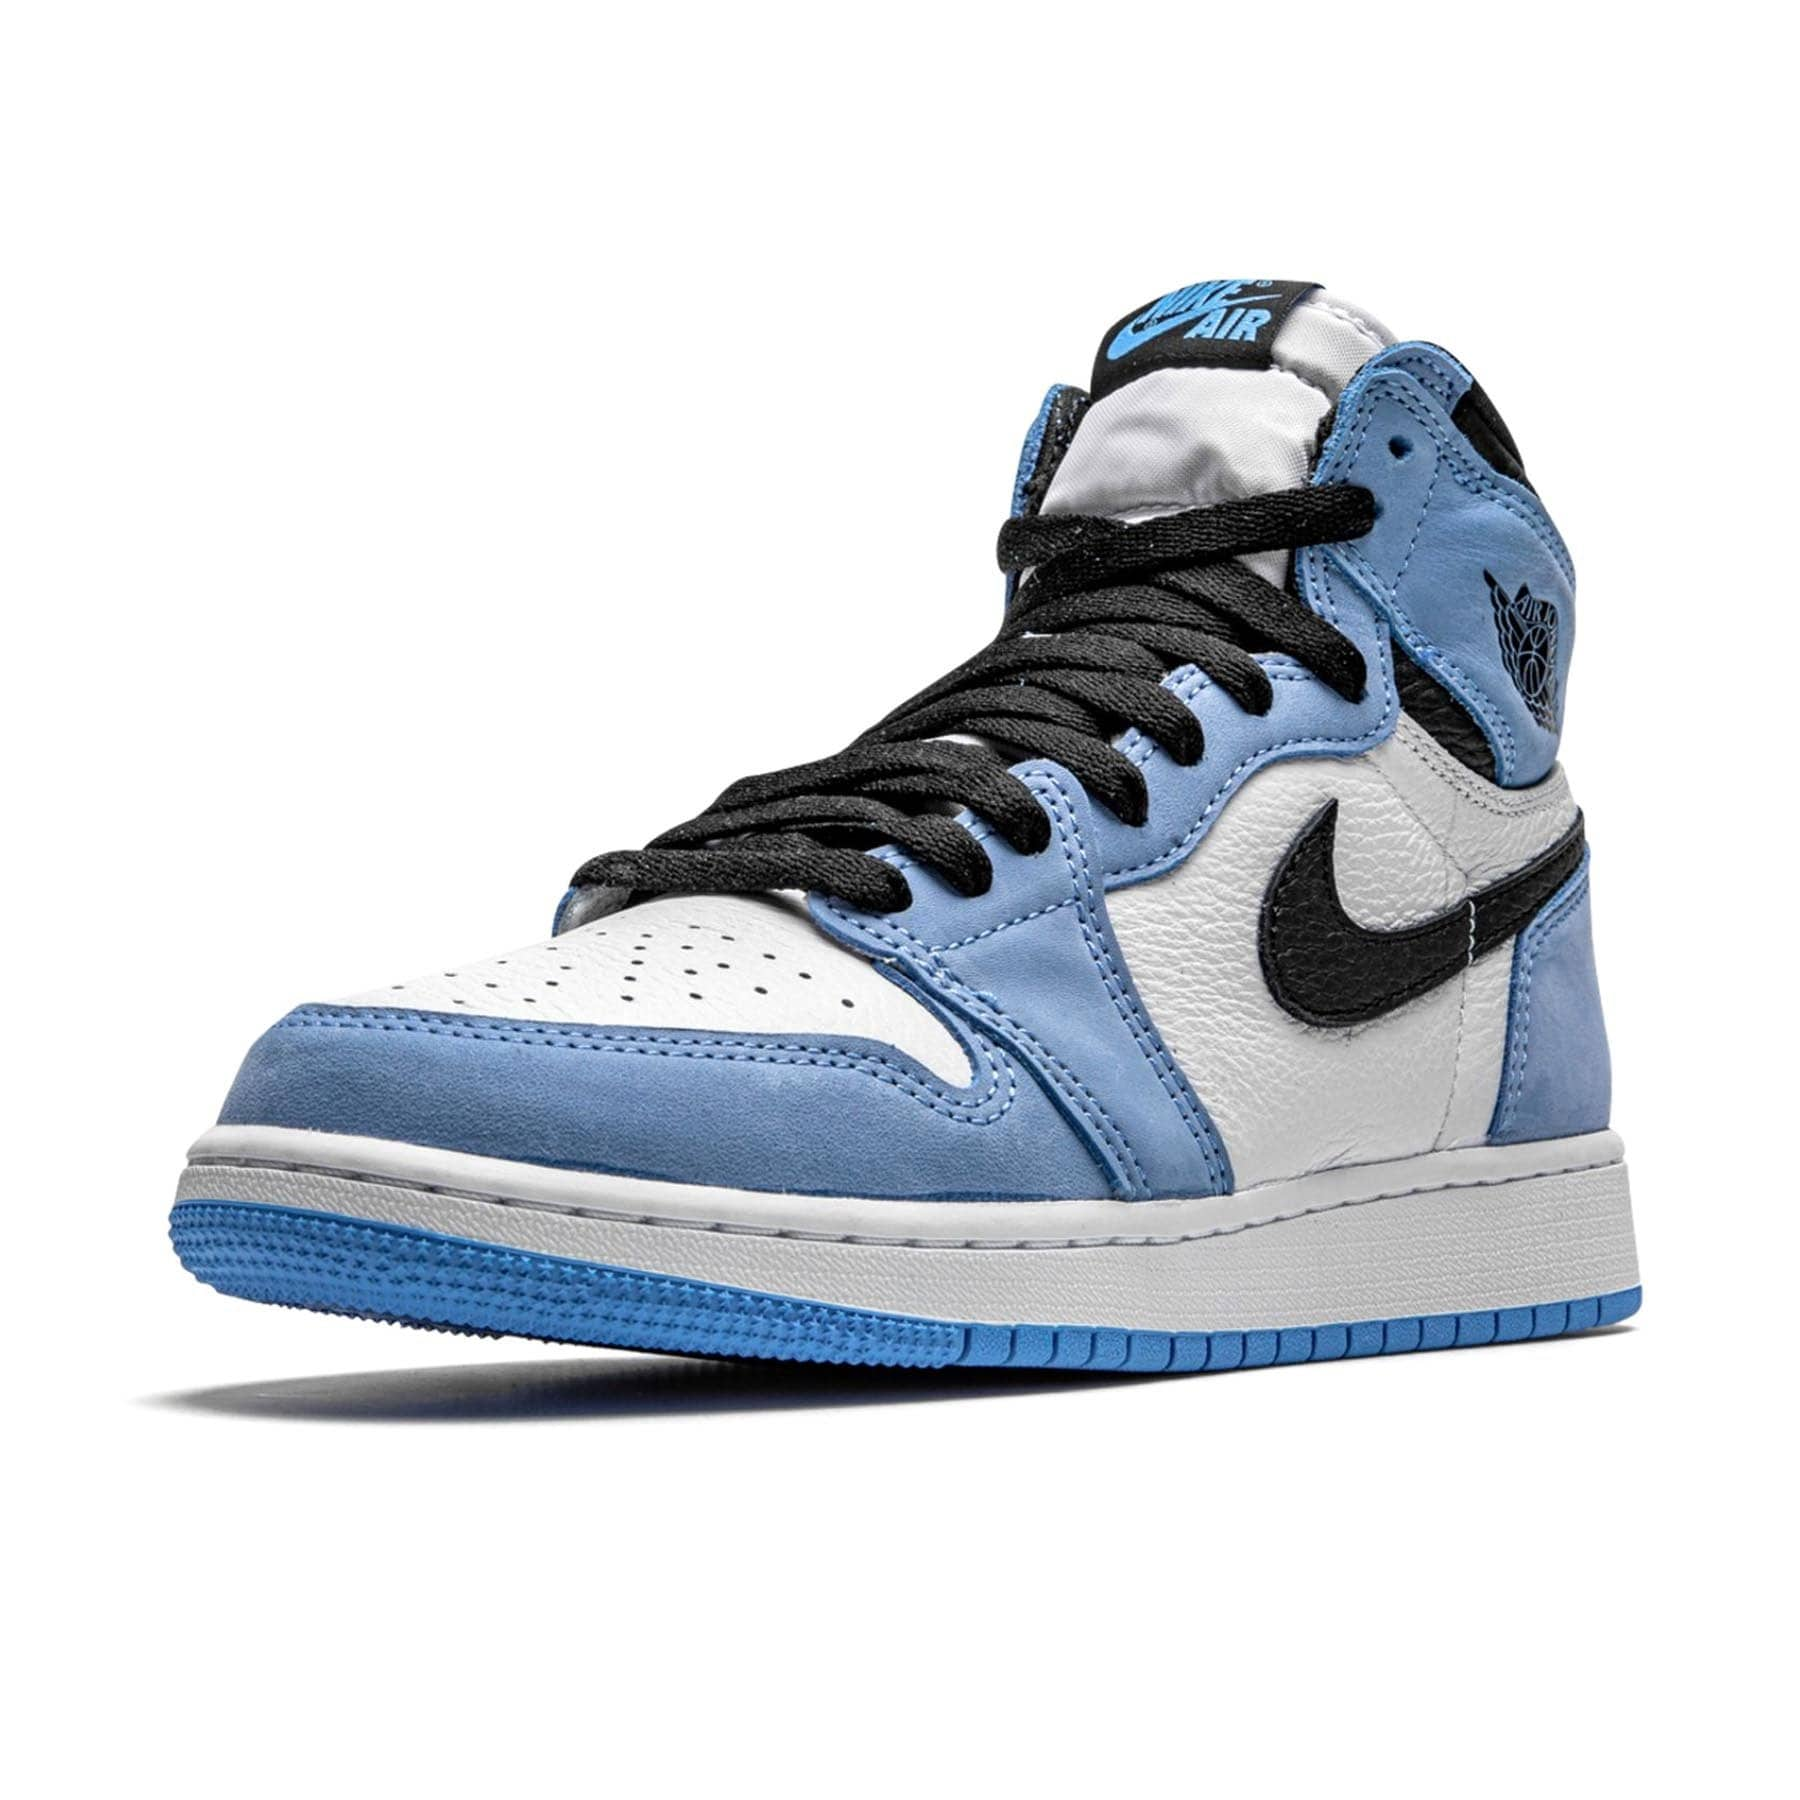 Air Jordan 1 Retro High OG GS 'University Blue' - Kick Game